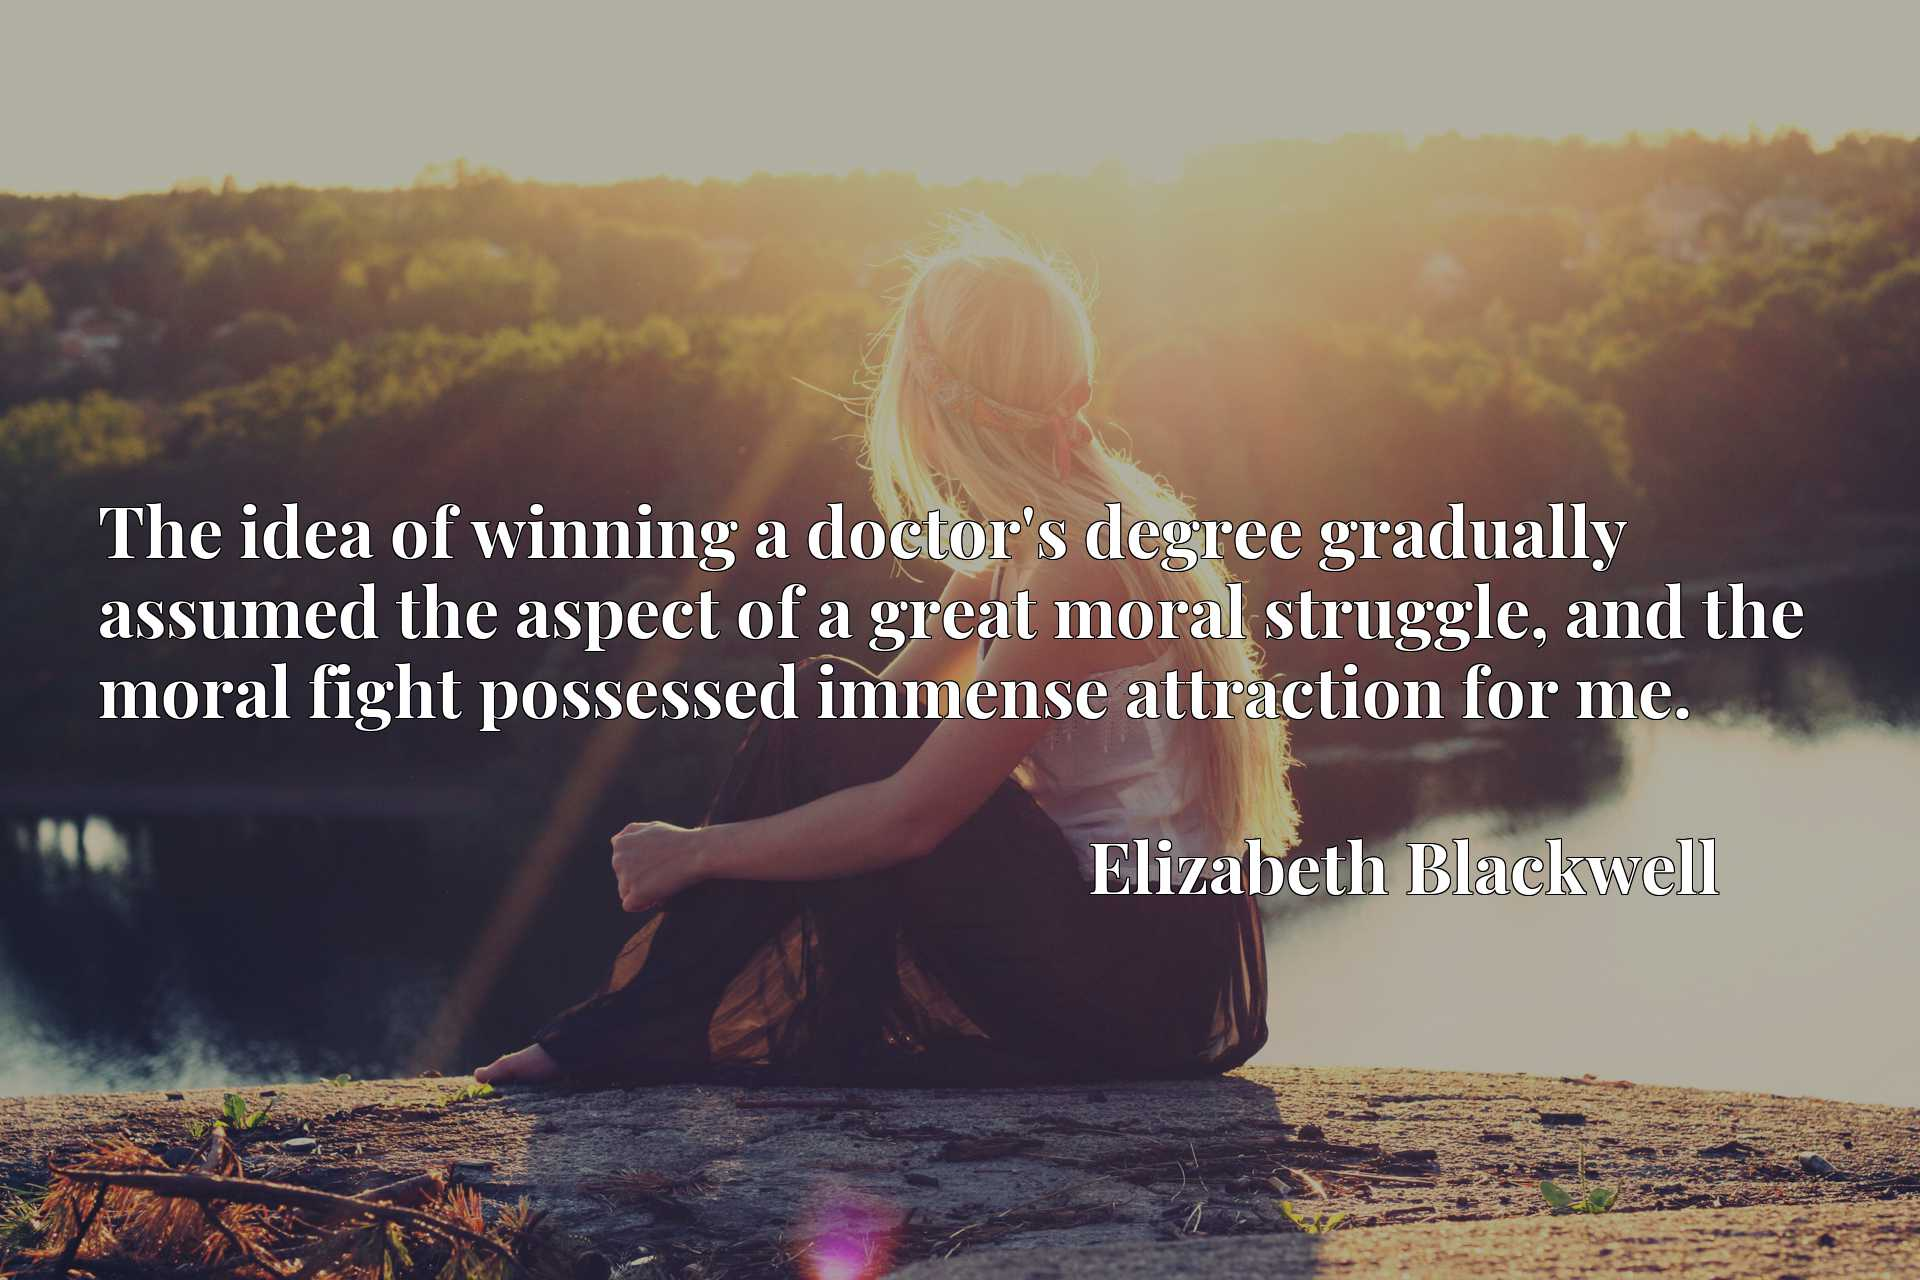 The idea of winning a doctor's degree gradually assumed the aspect of a great moral struggle, and the moral fight possessed immense attraction for me.